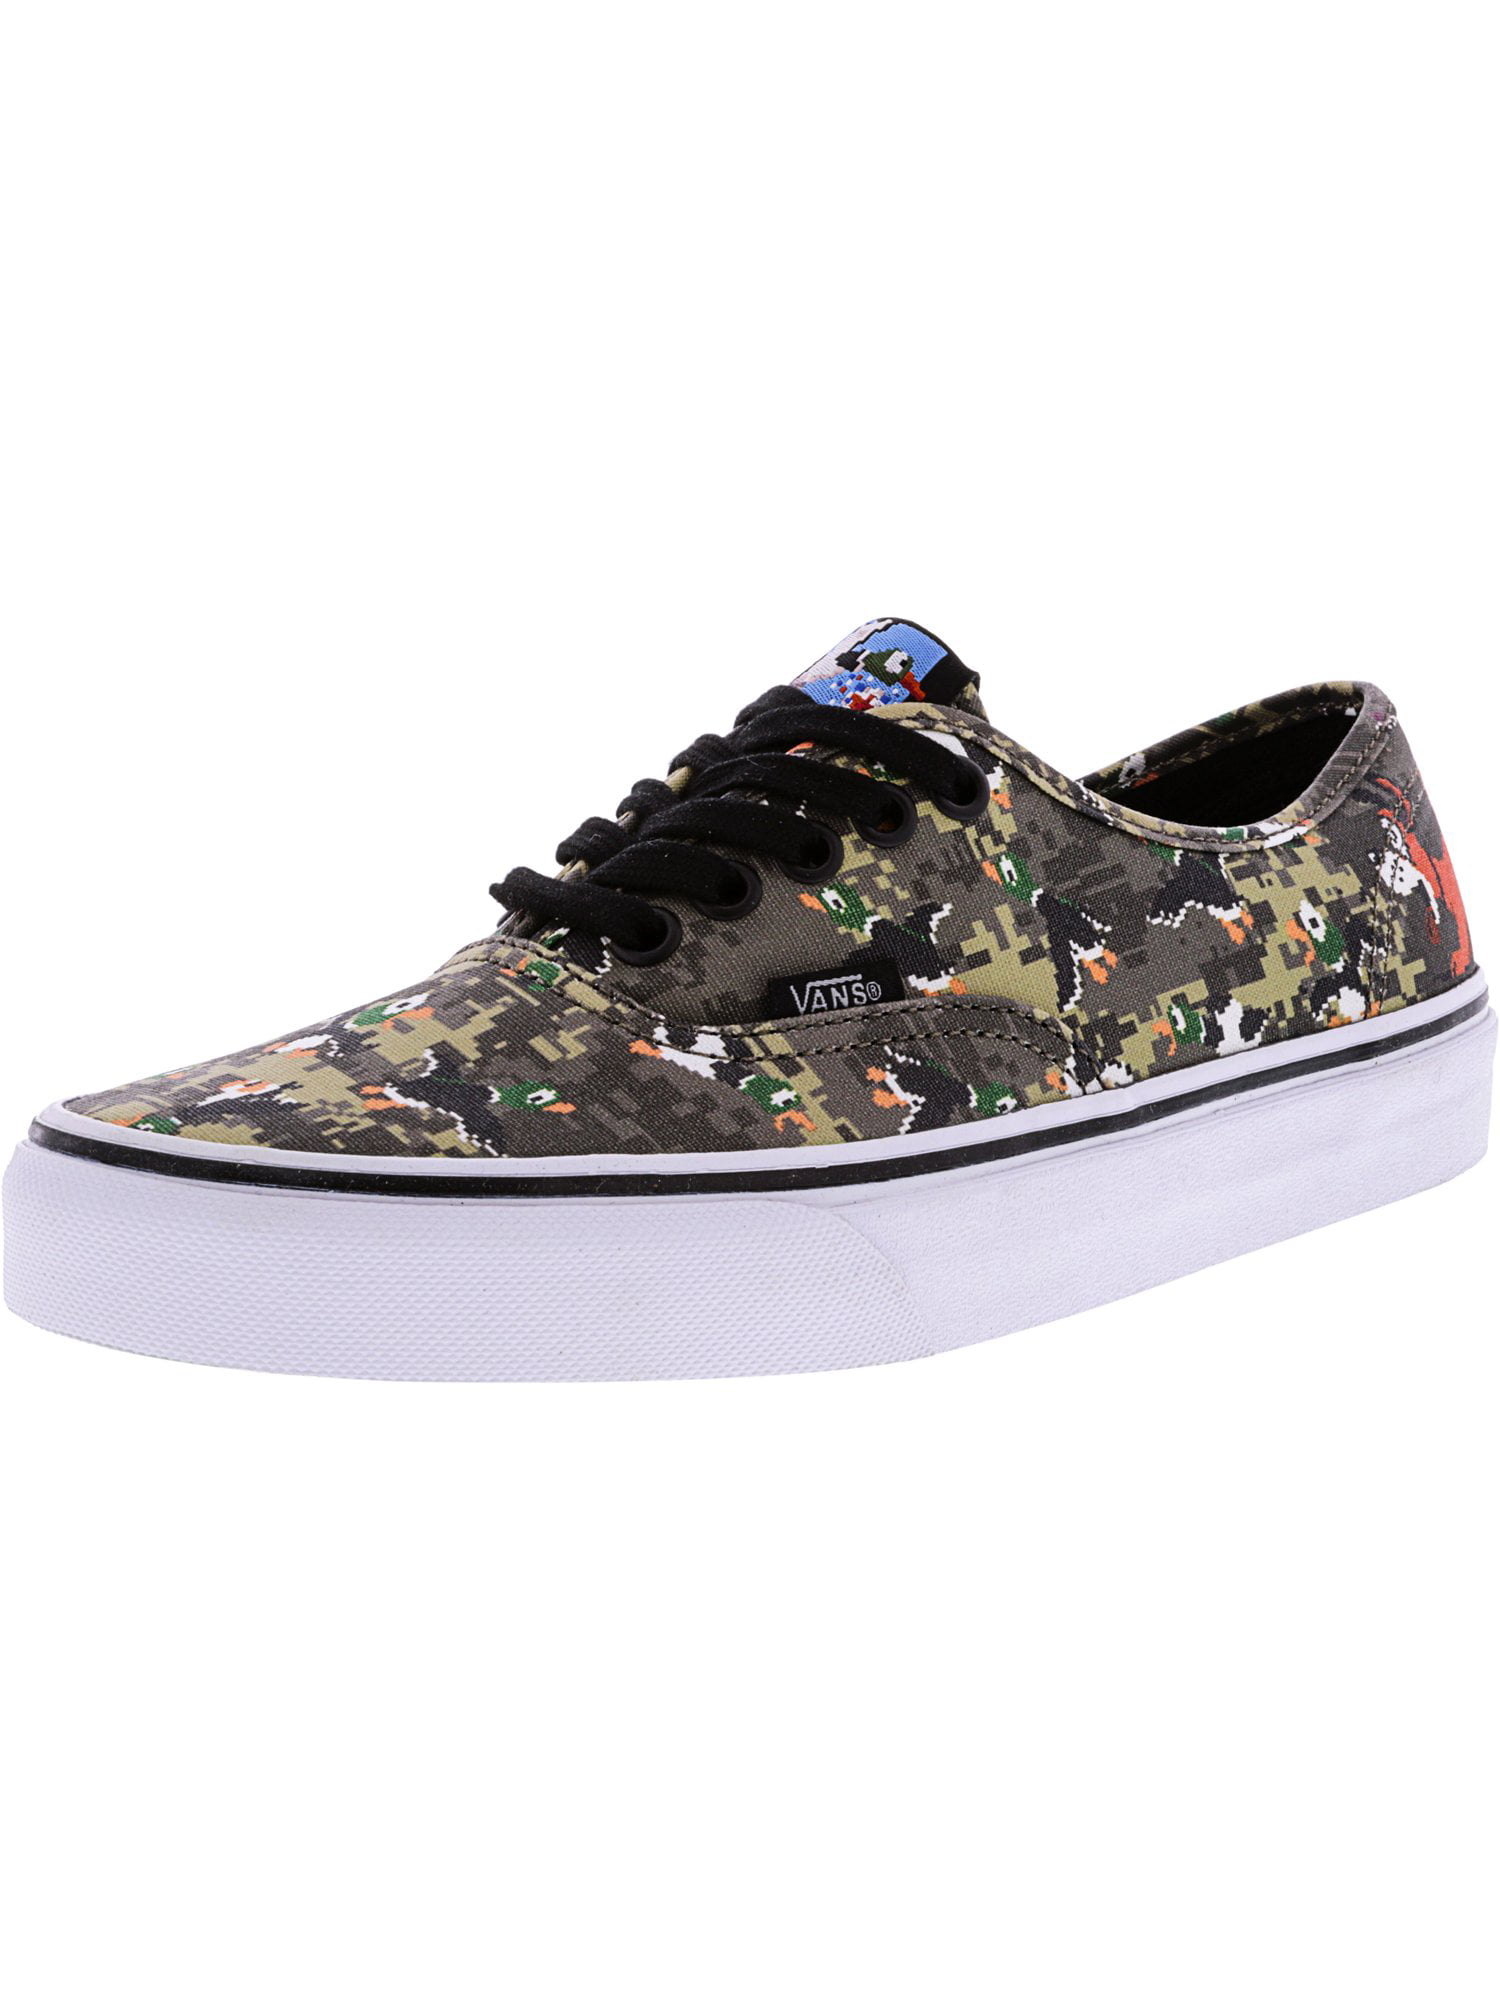 864ae643a72 Vans - Vans Authentic Nintendo Princess Peach Ankle-High Canvas  Skateboarding Shoe - 8.5M   7M - Walmart.com